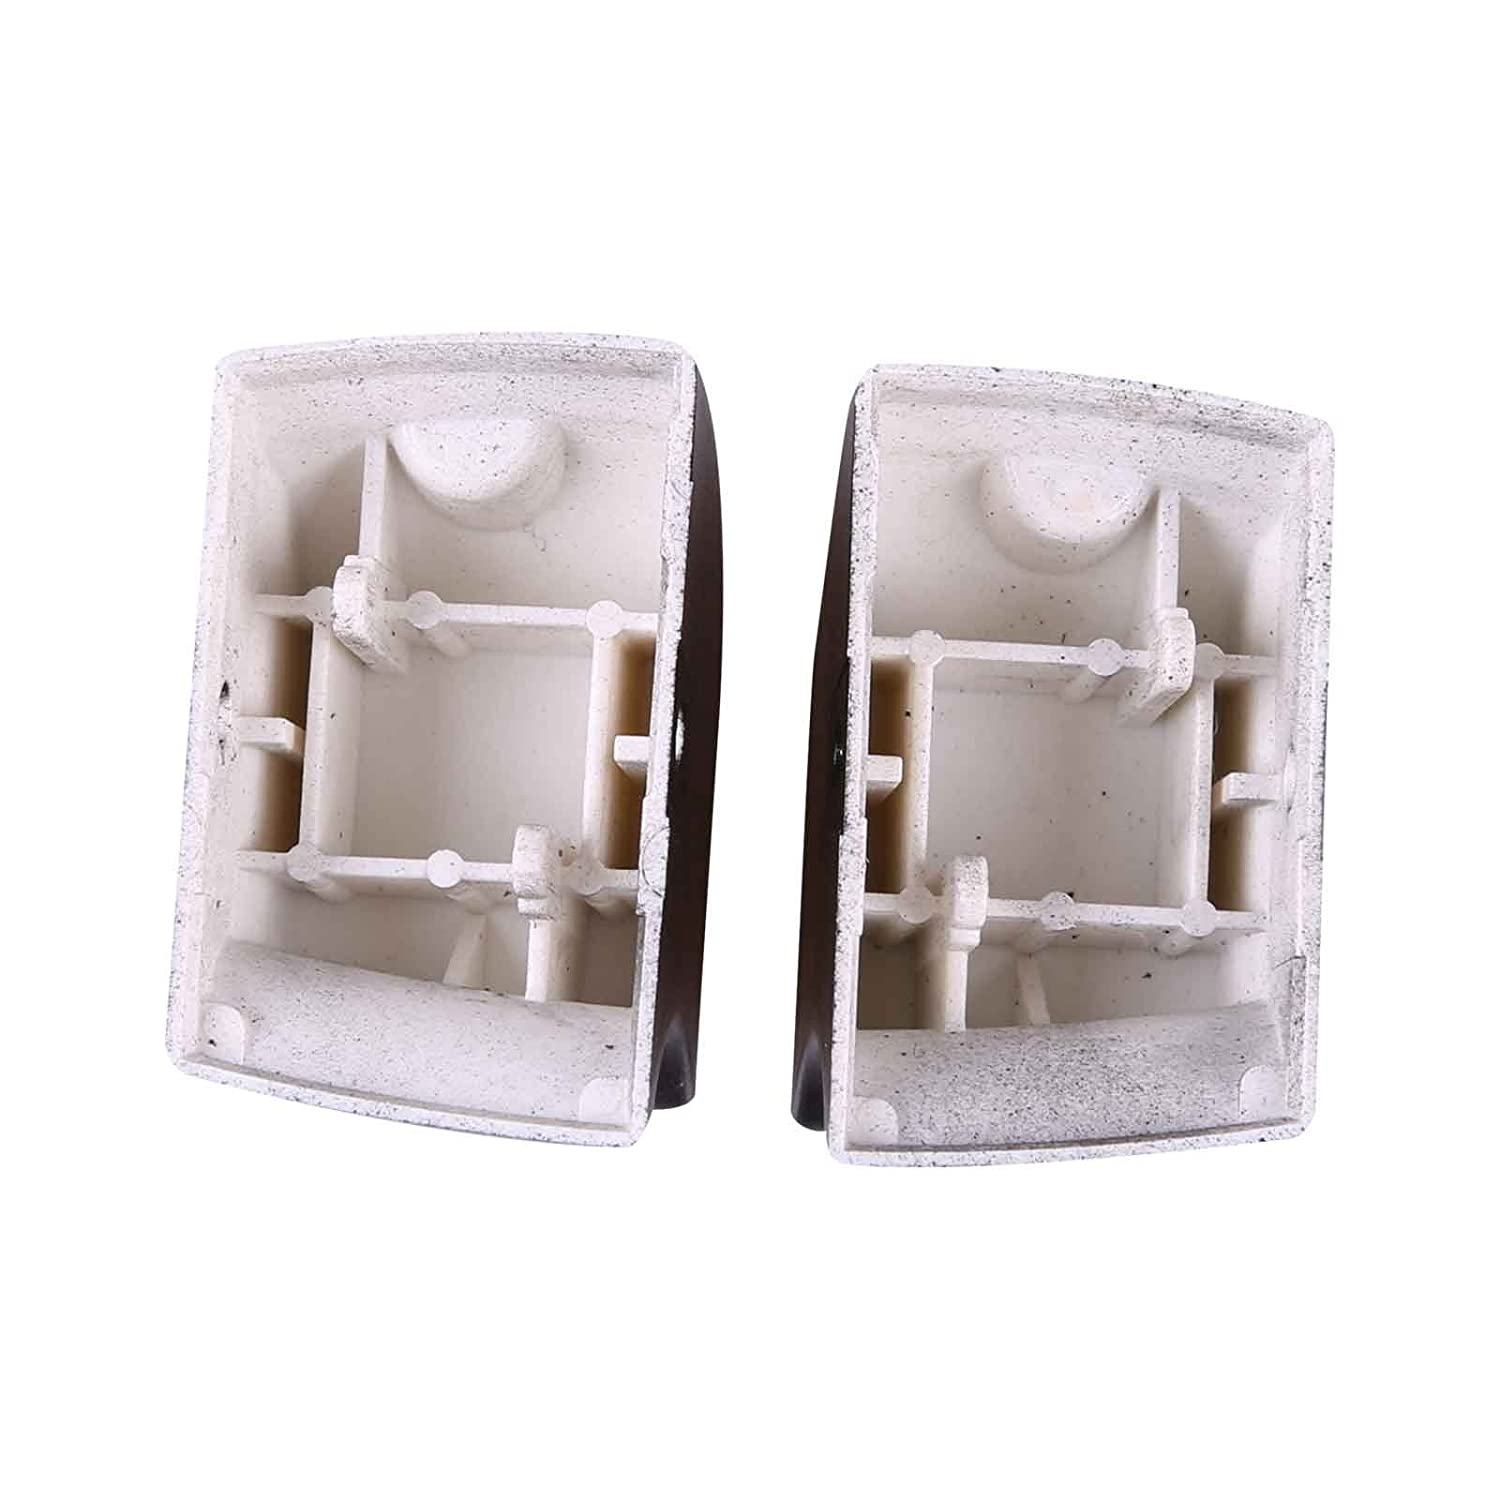 Bross BDP119FBA 2 Pieces Power Window Switch Button Cover Cap Front Left Hand Driver Side for Audi:4FD 959 855// 4F0 959 855 Bross Auto Parts